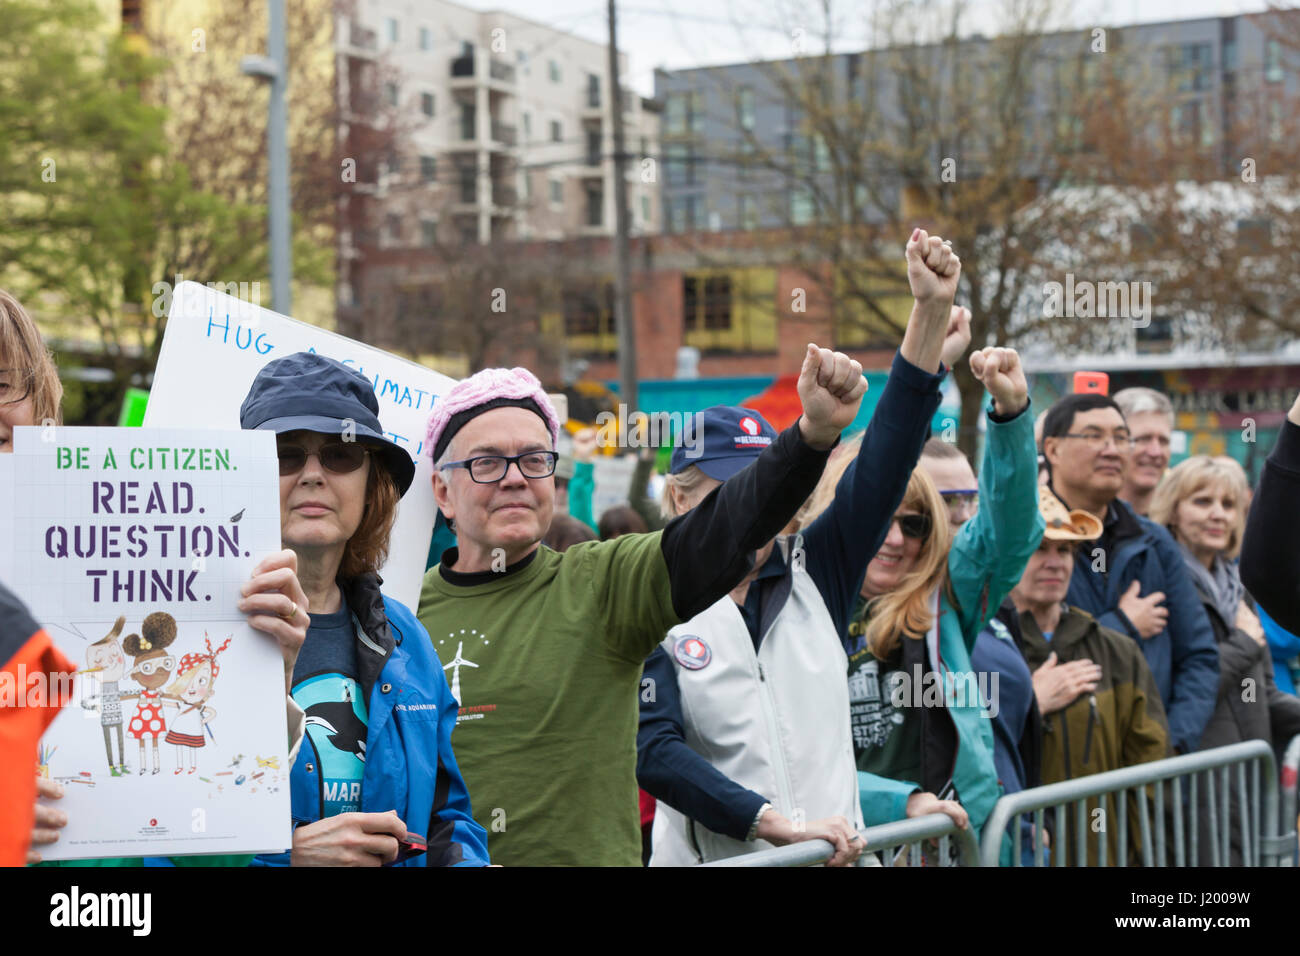 Seattle, Washington,USA. 22nd April, 2017. Protestors raise their fists during the national anthem at the rally Stock Photo